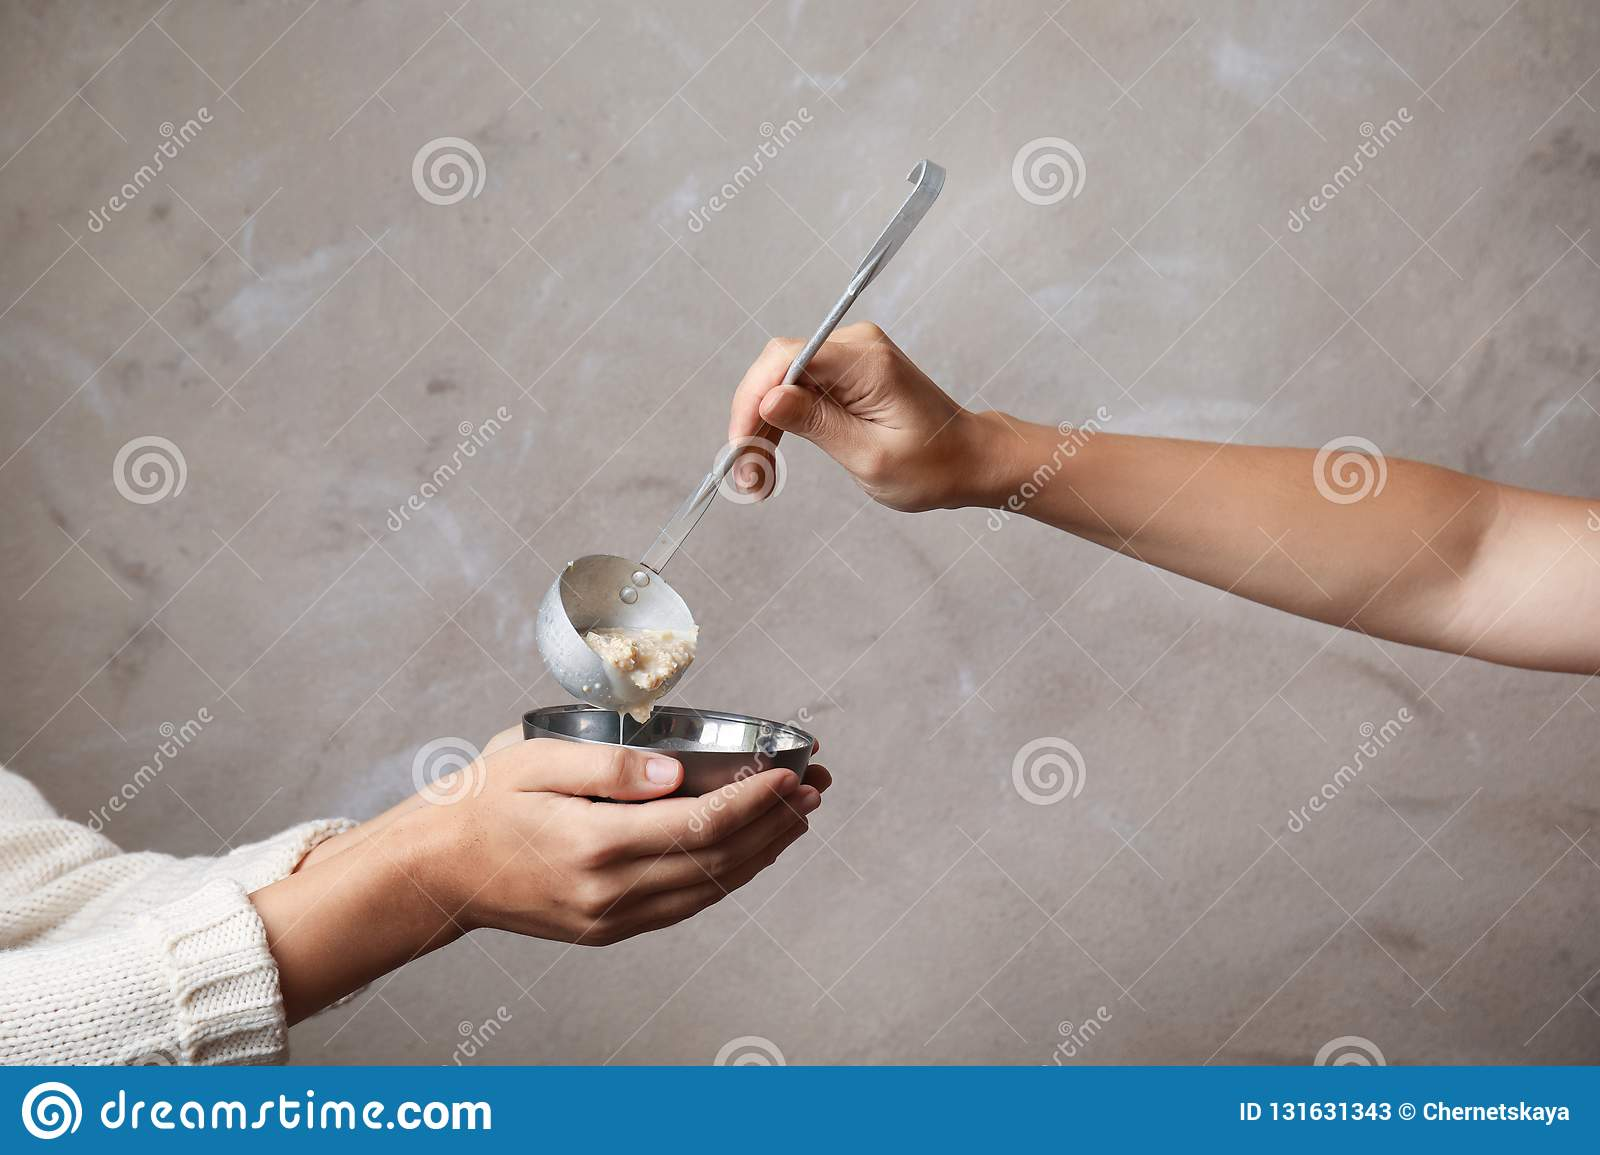 Volunteer putting food into bowl of poor woman on color background, closeup.